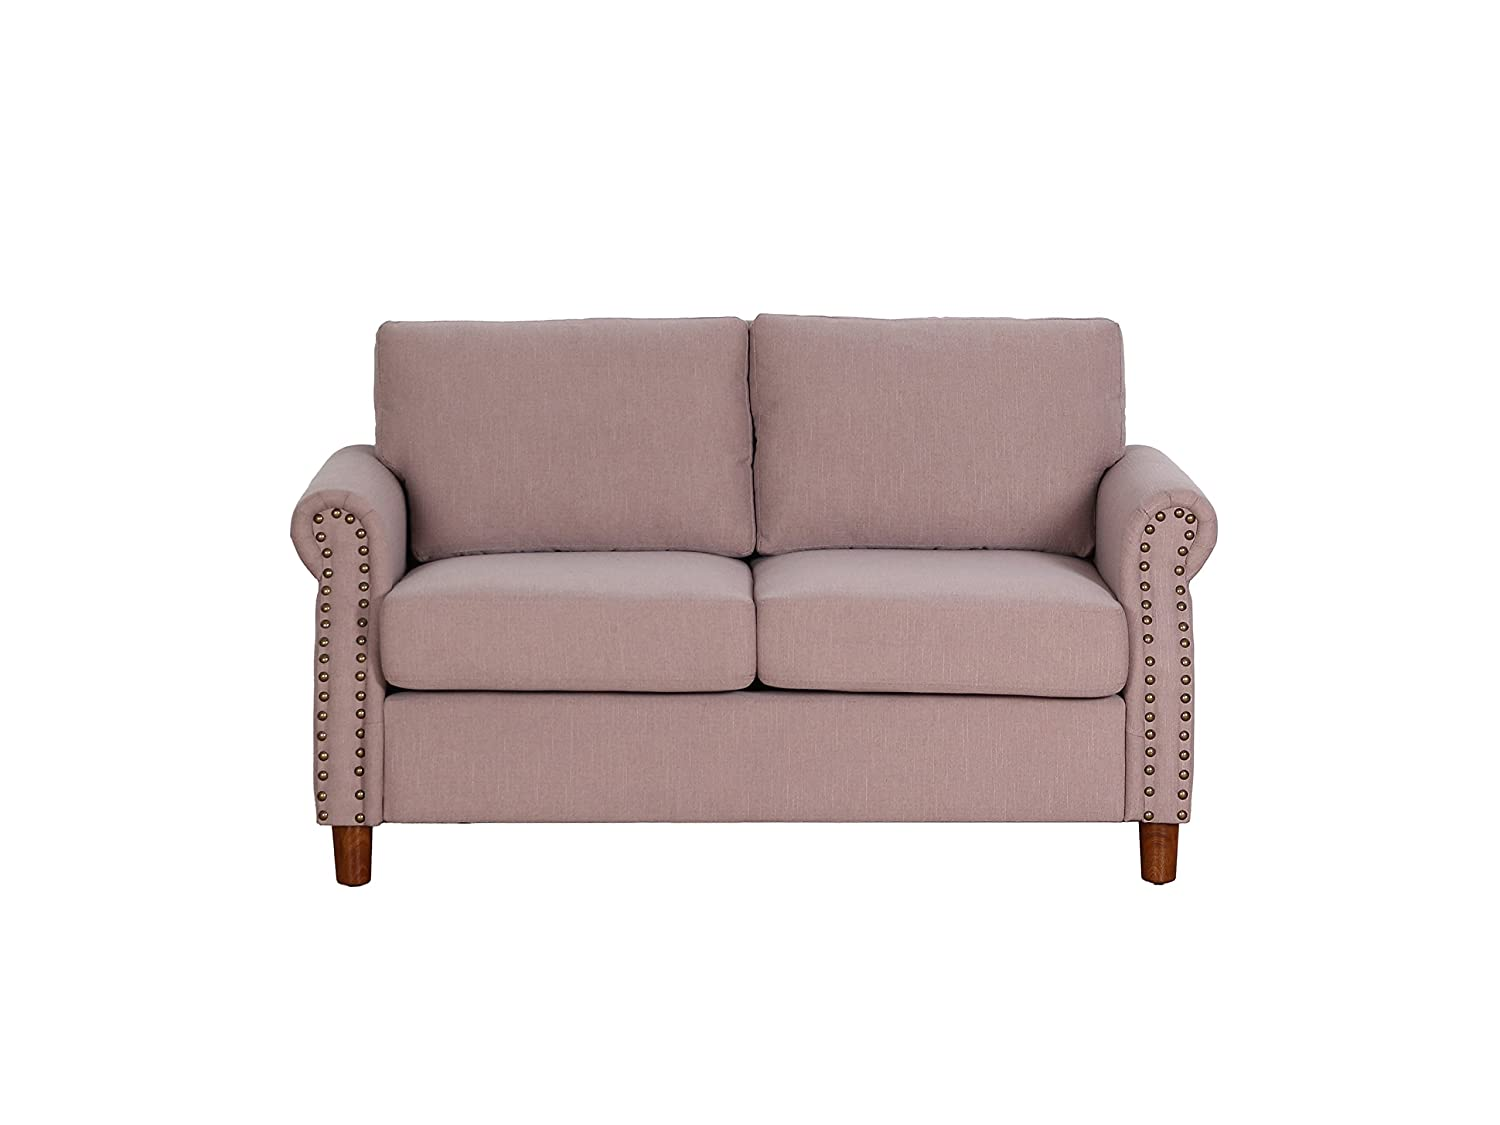 Amazon.com: Container Furniture Direct Cowie Classic ...